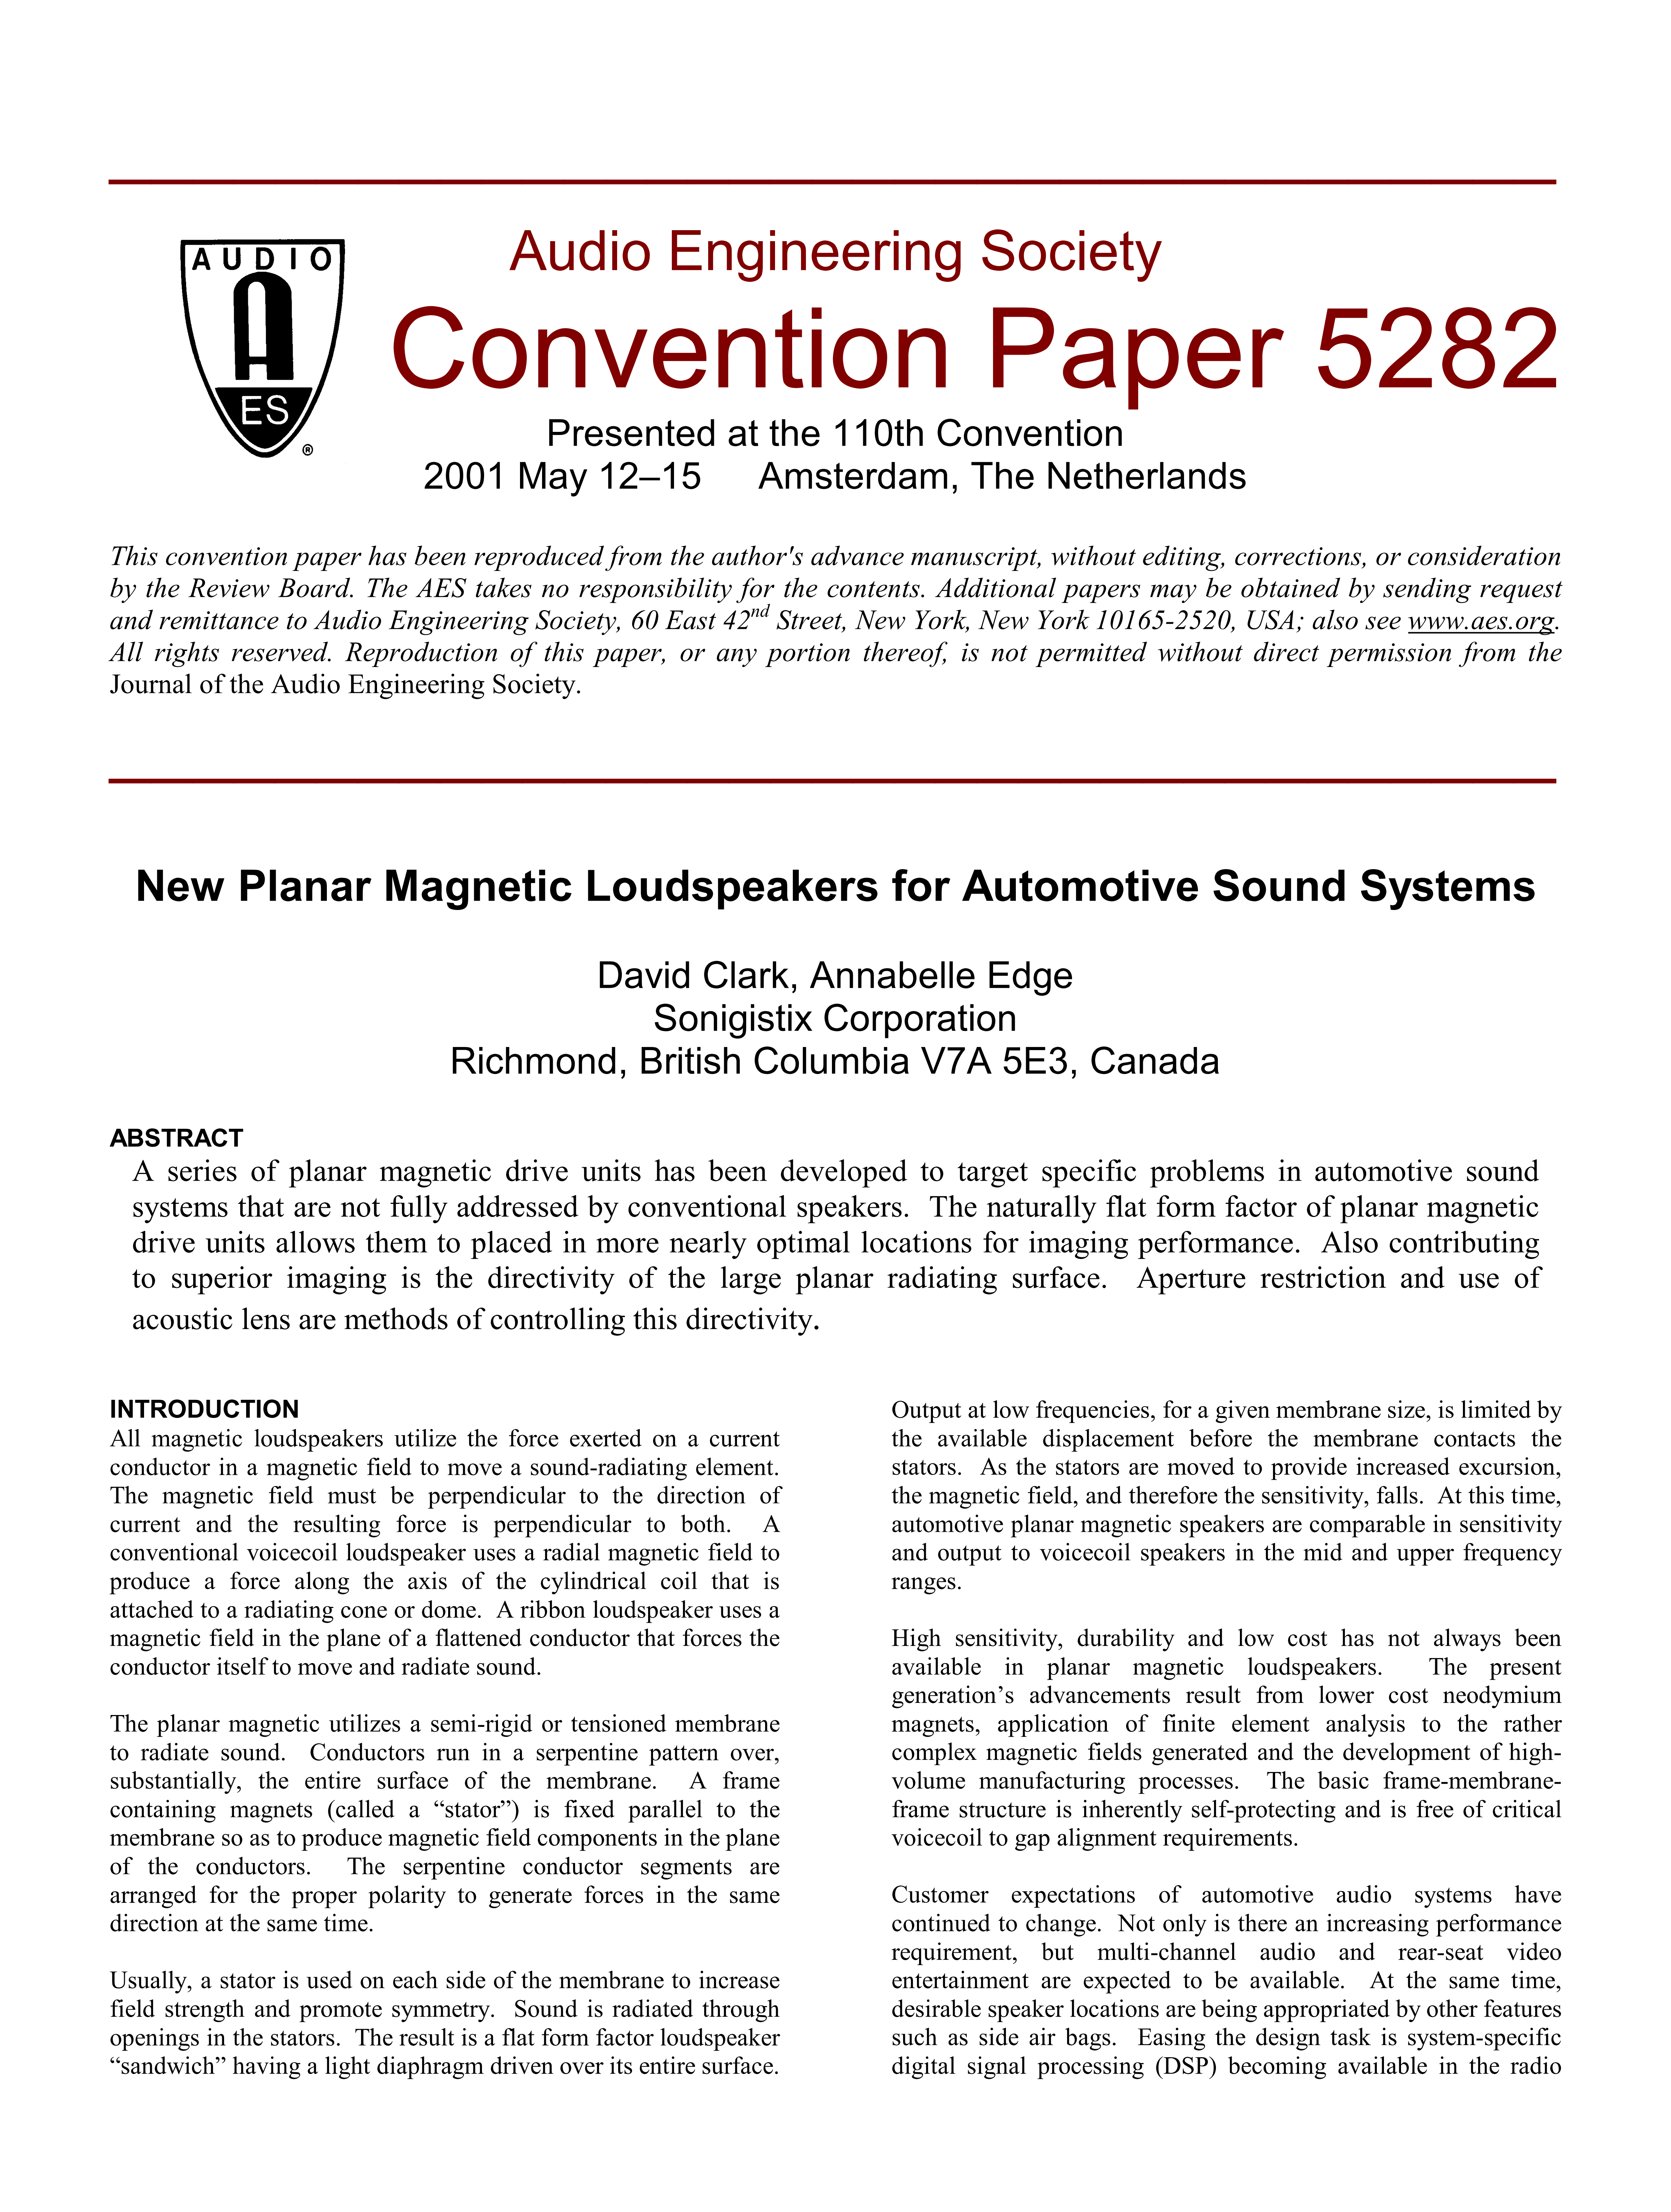 AES E-Library » New Planar Magnetic Loudspeakers for